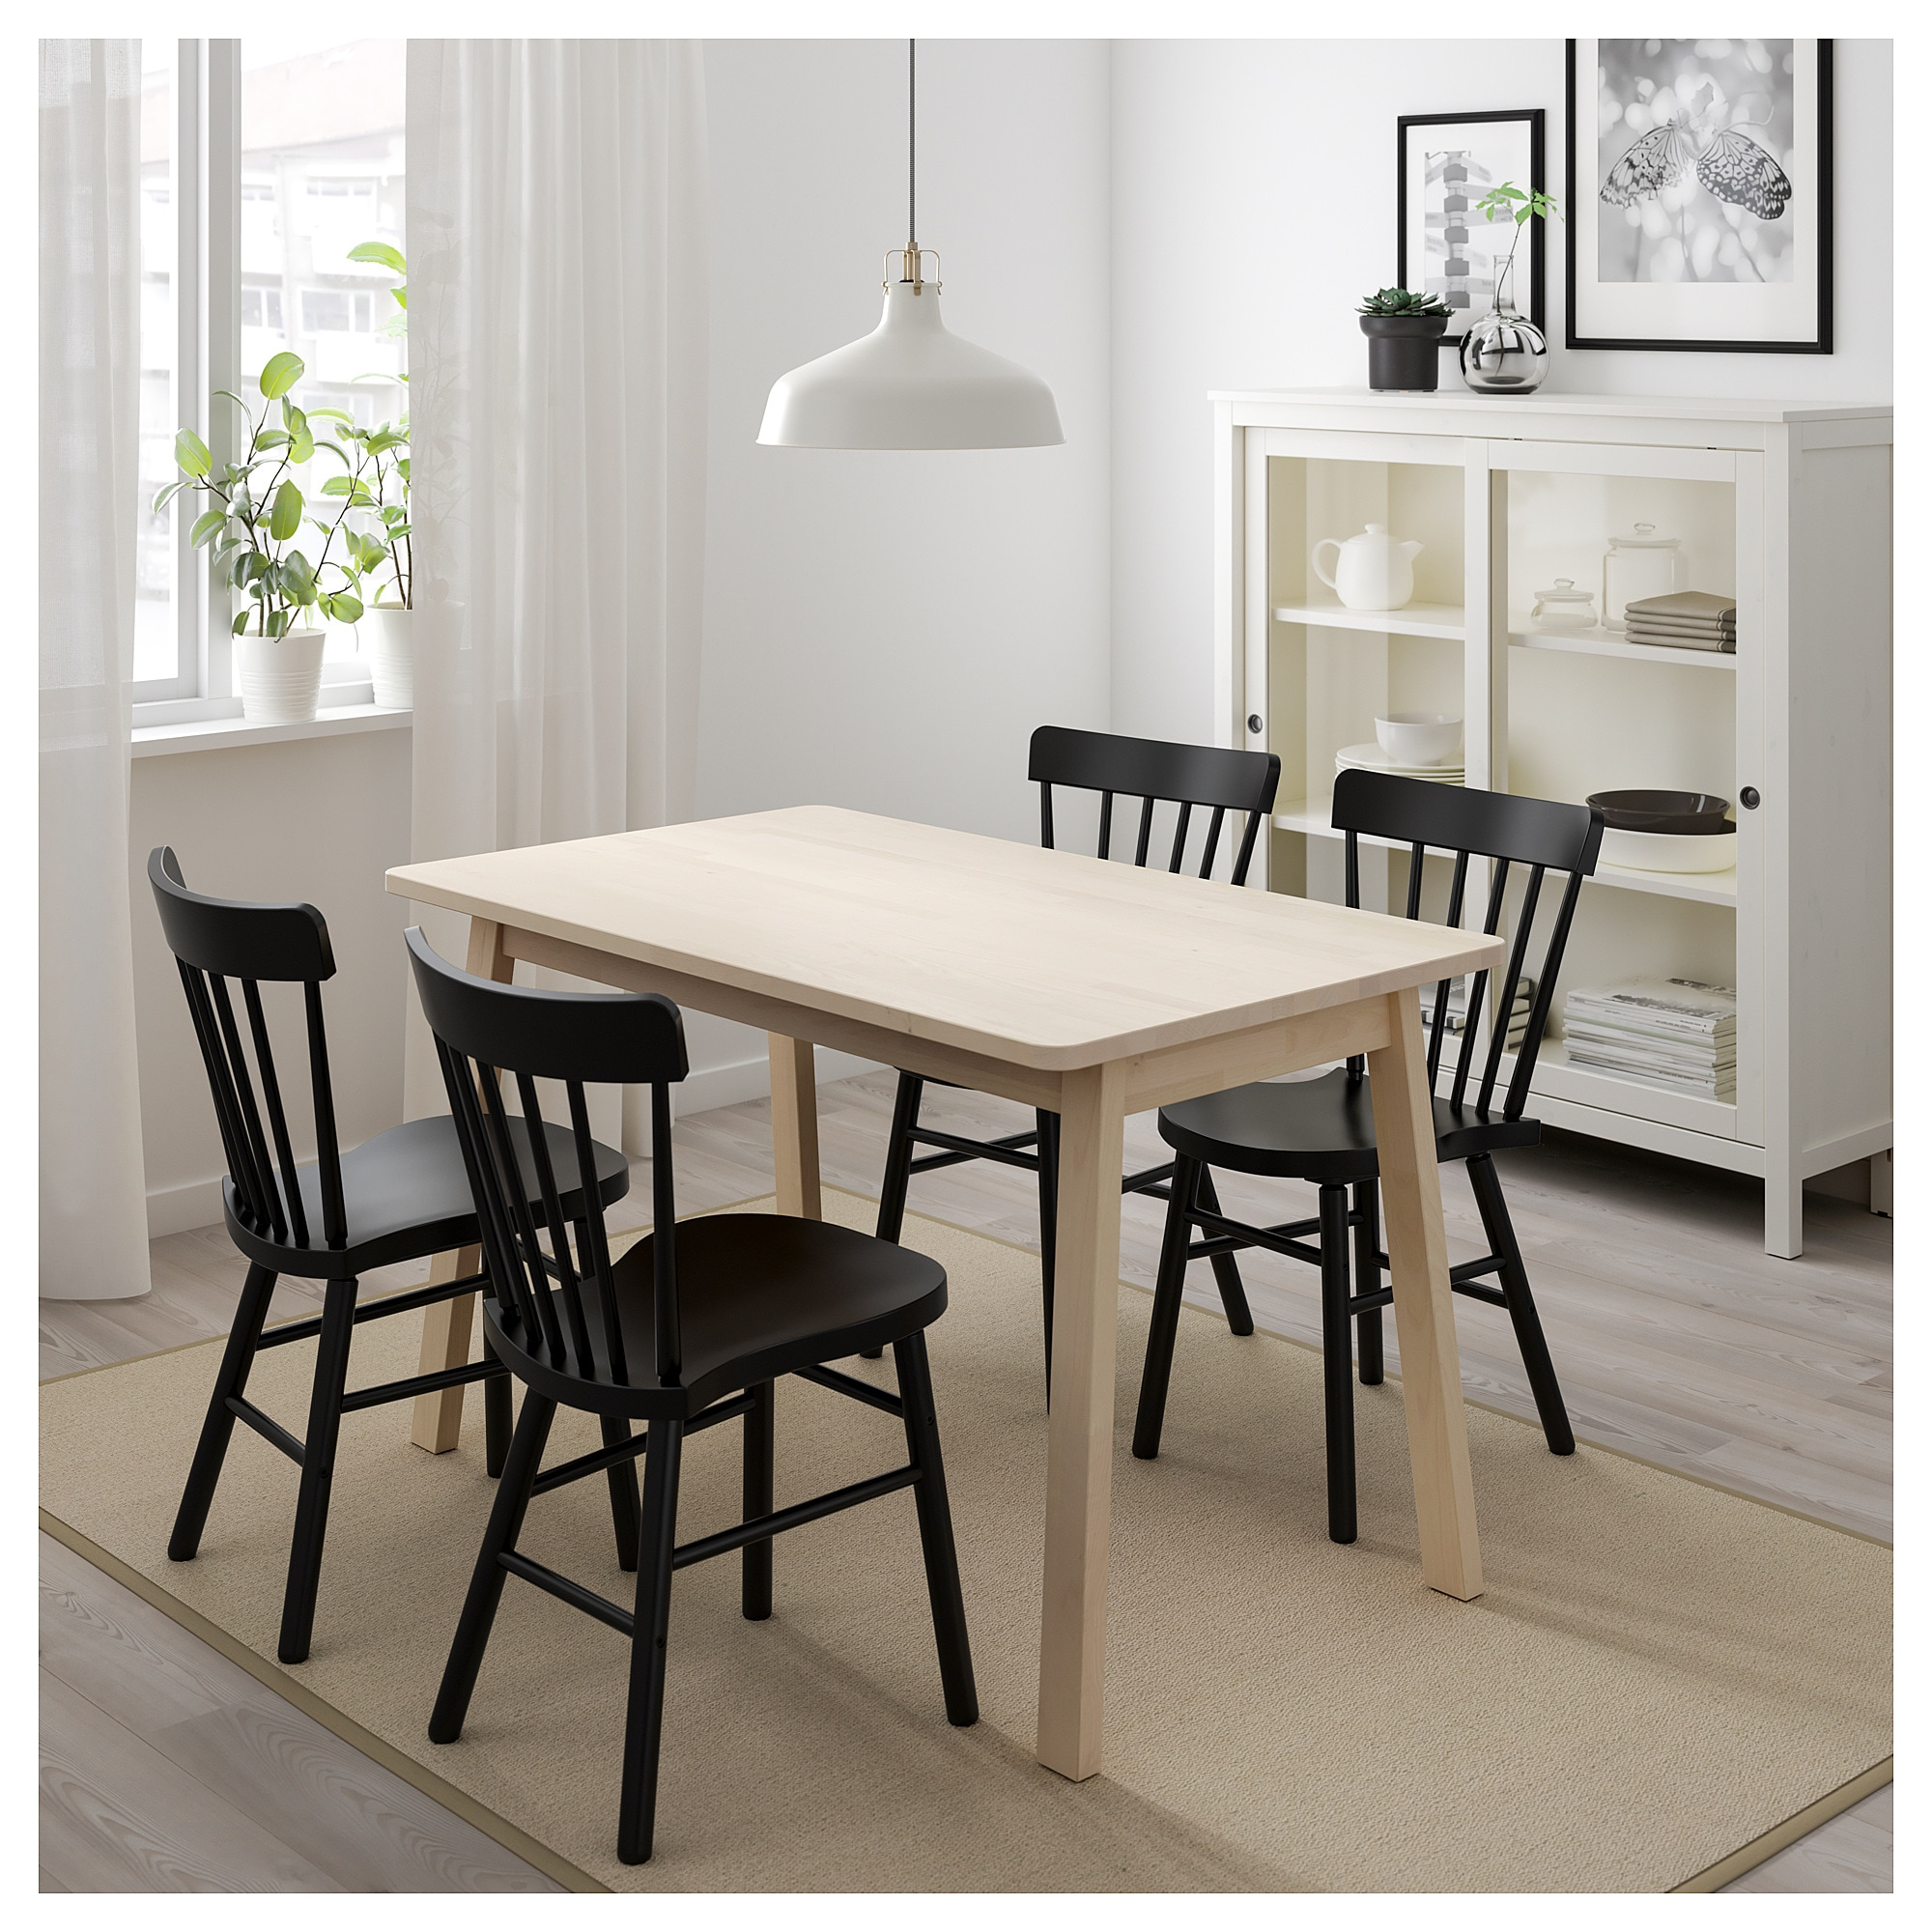 Norråker Norraryd Table And 4 Chairs Ikea